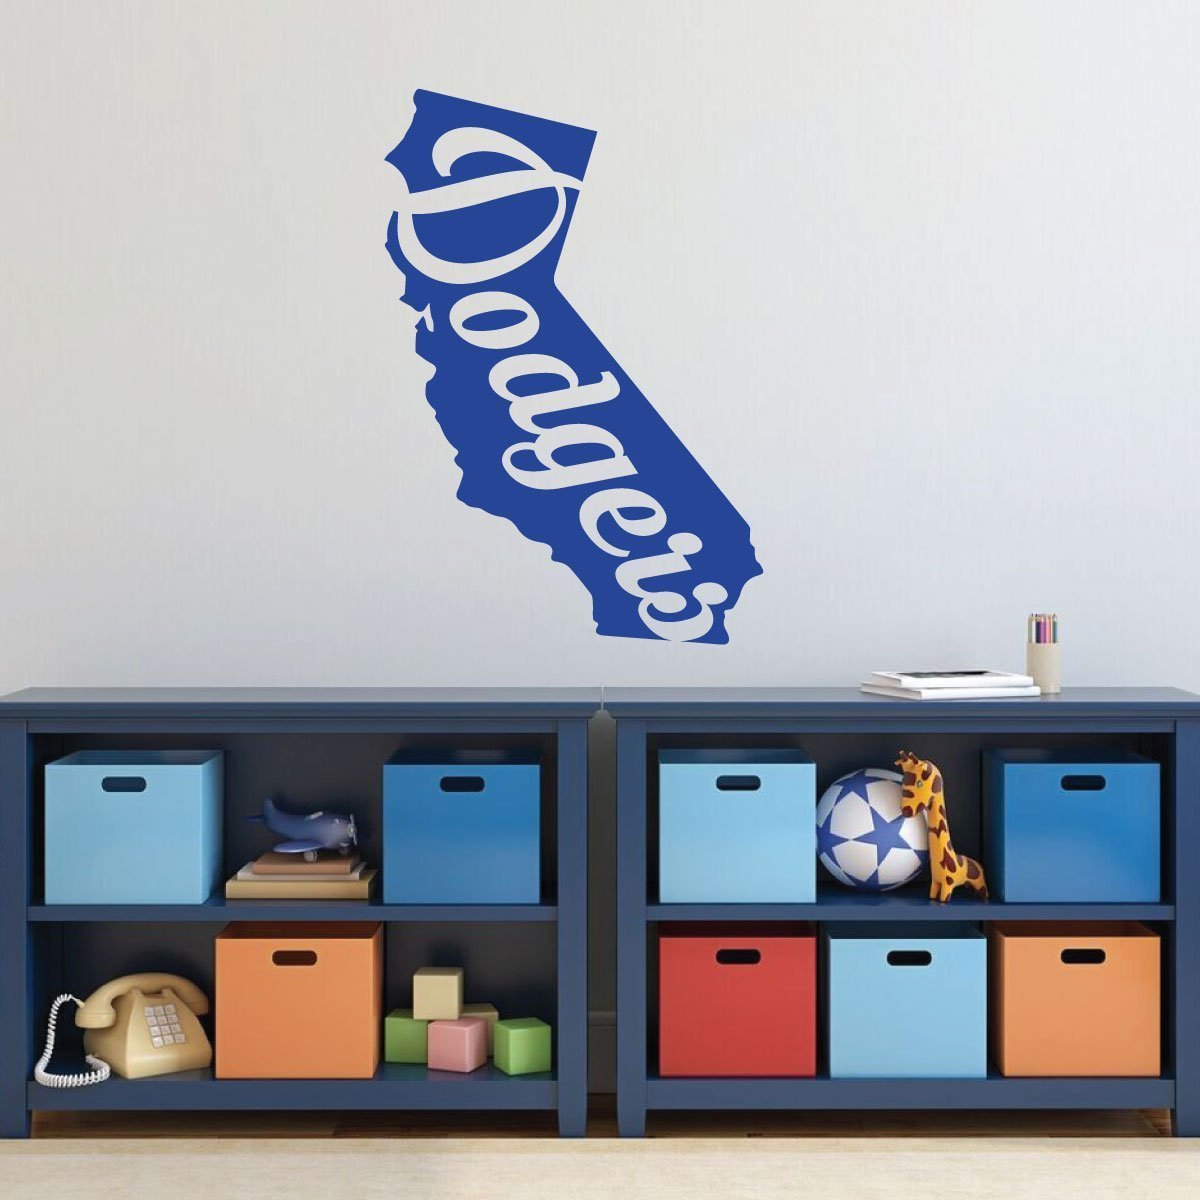 LA Dodgers Wall Decor - State Of California Baseball Decorations